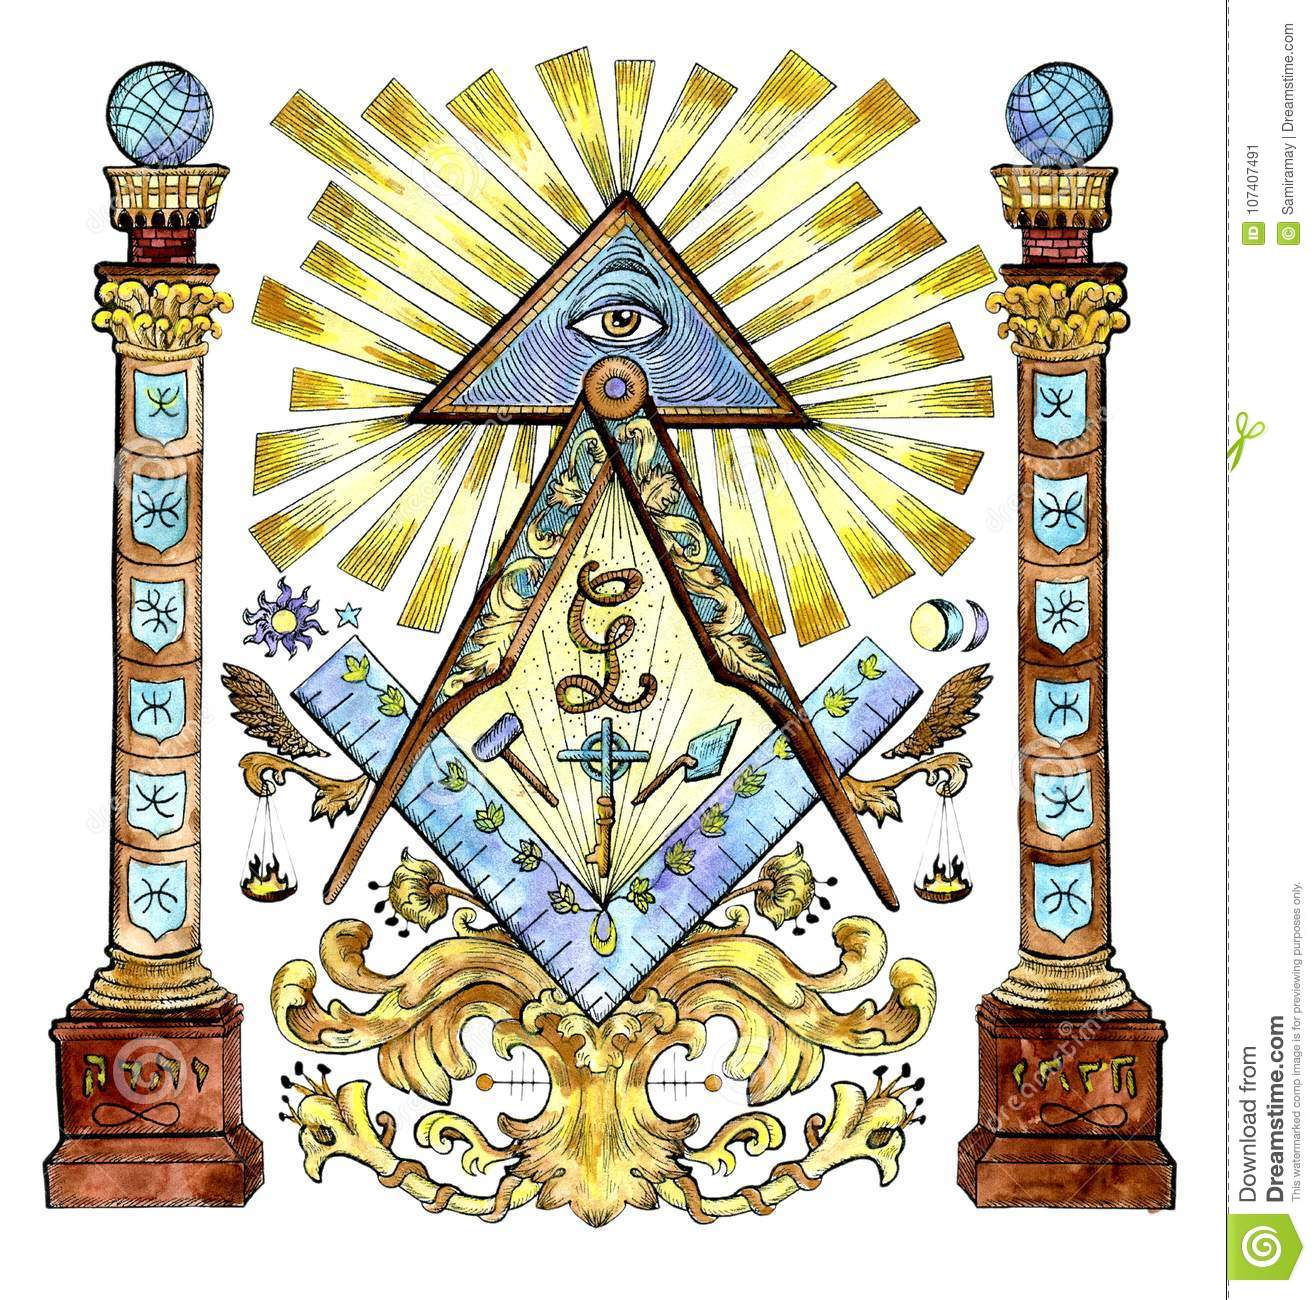 Watercolor Illustration With Freemason And Mysterious Symbols